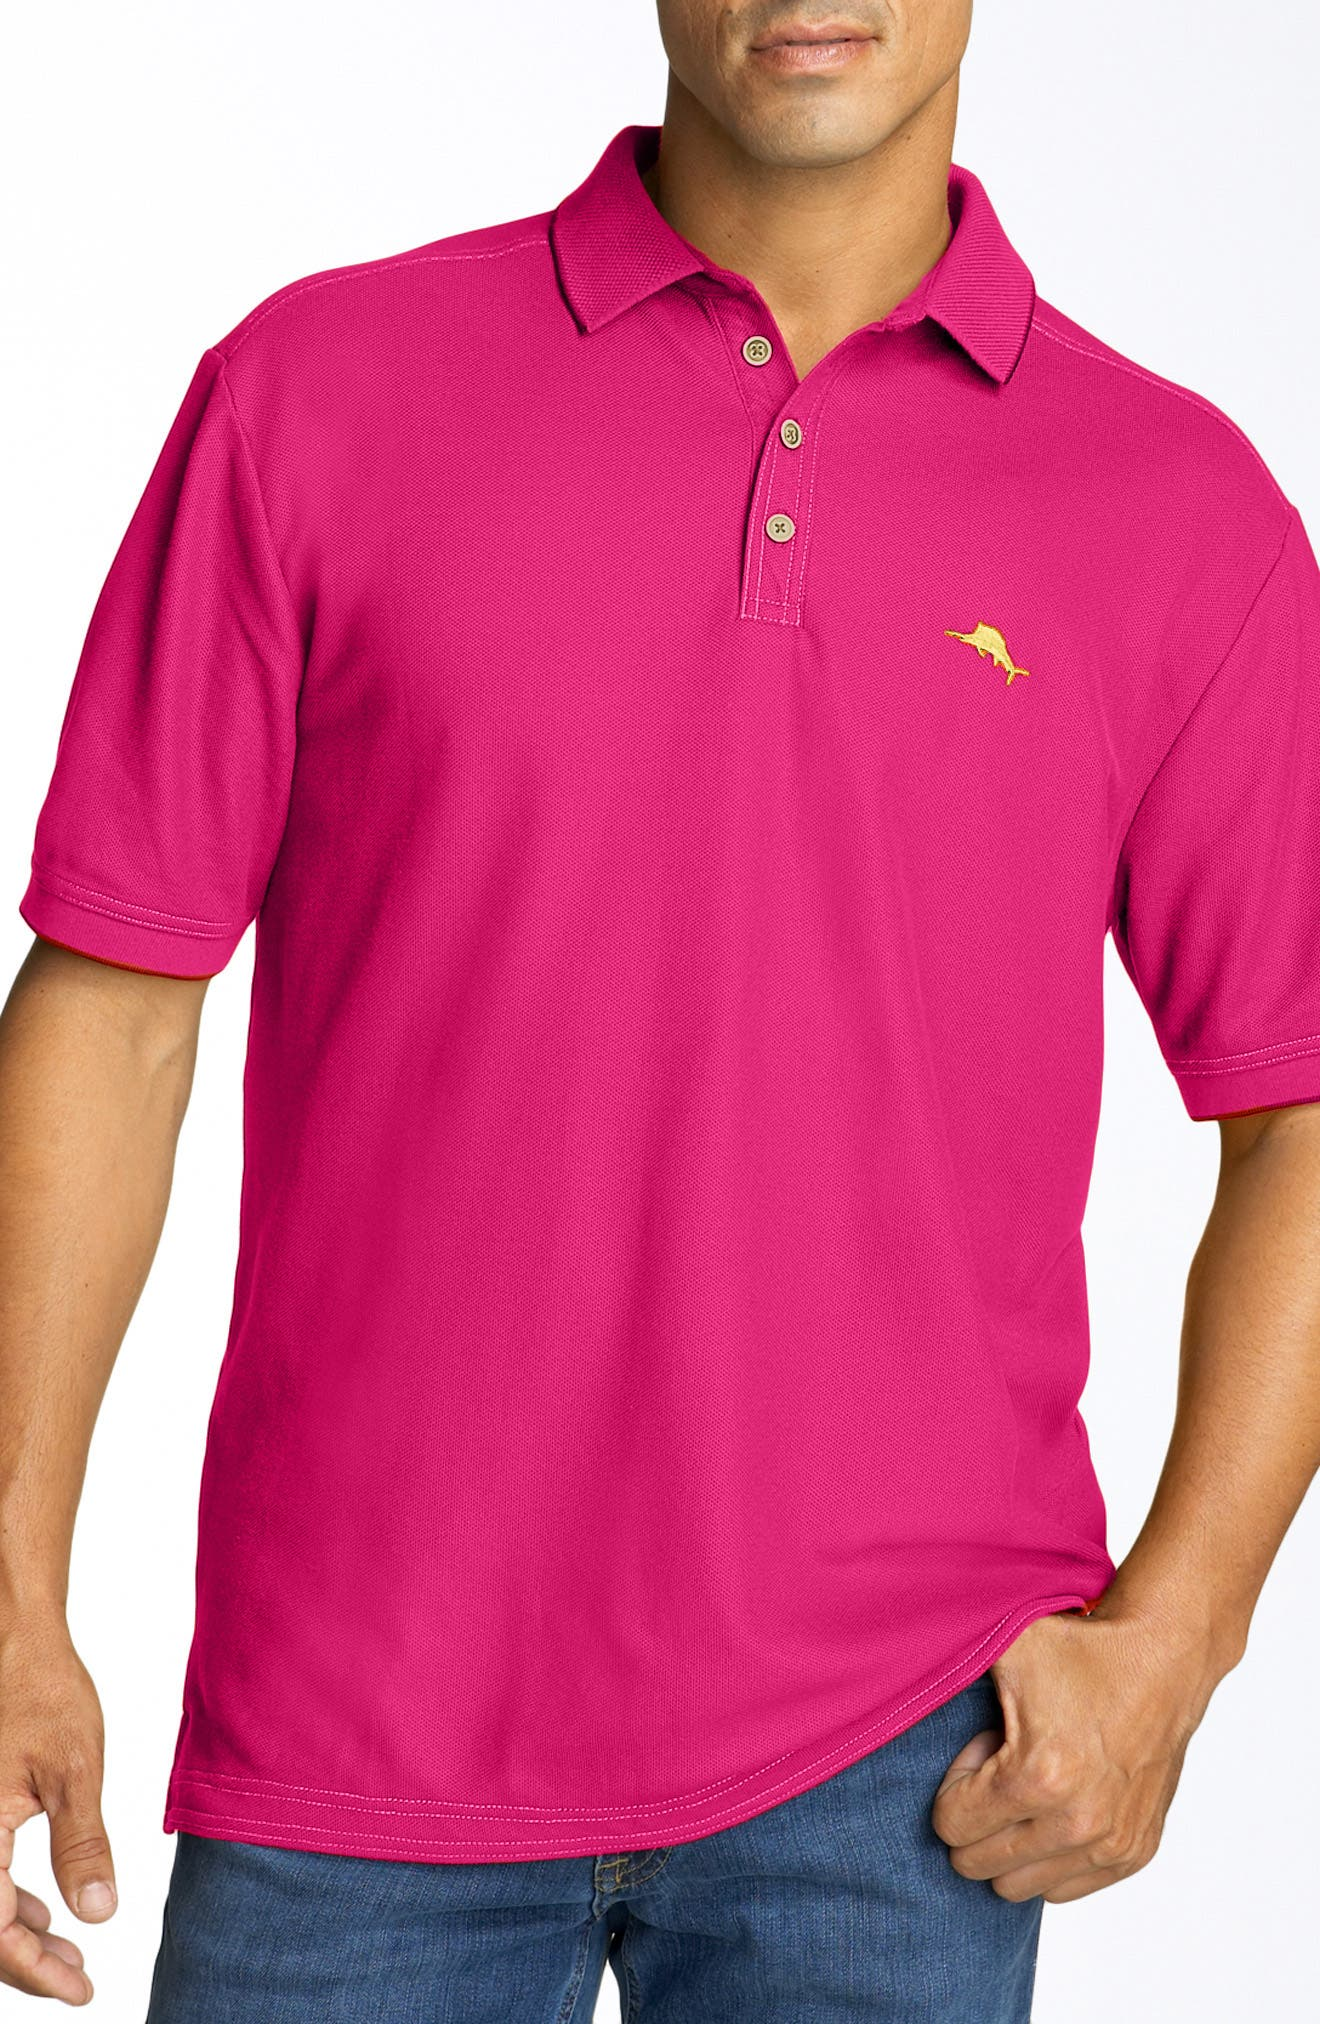 Alternate Image 1 Selected - Tommy Bahama 'The Emfielder' Piqué Polo (Big & Tall)